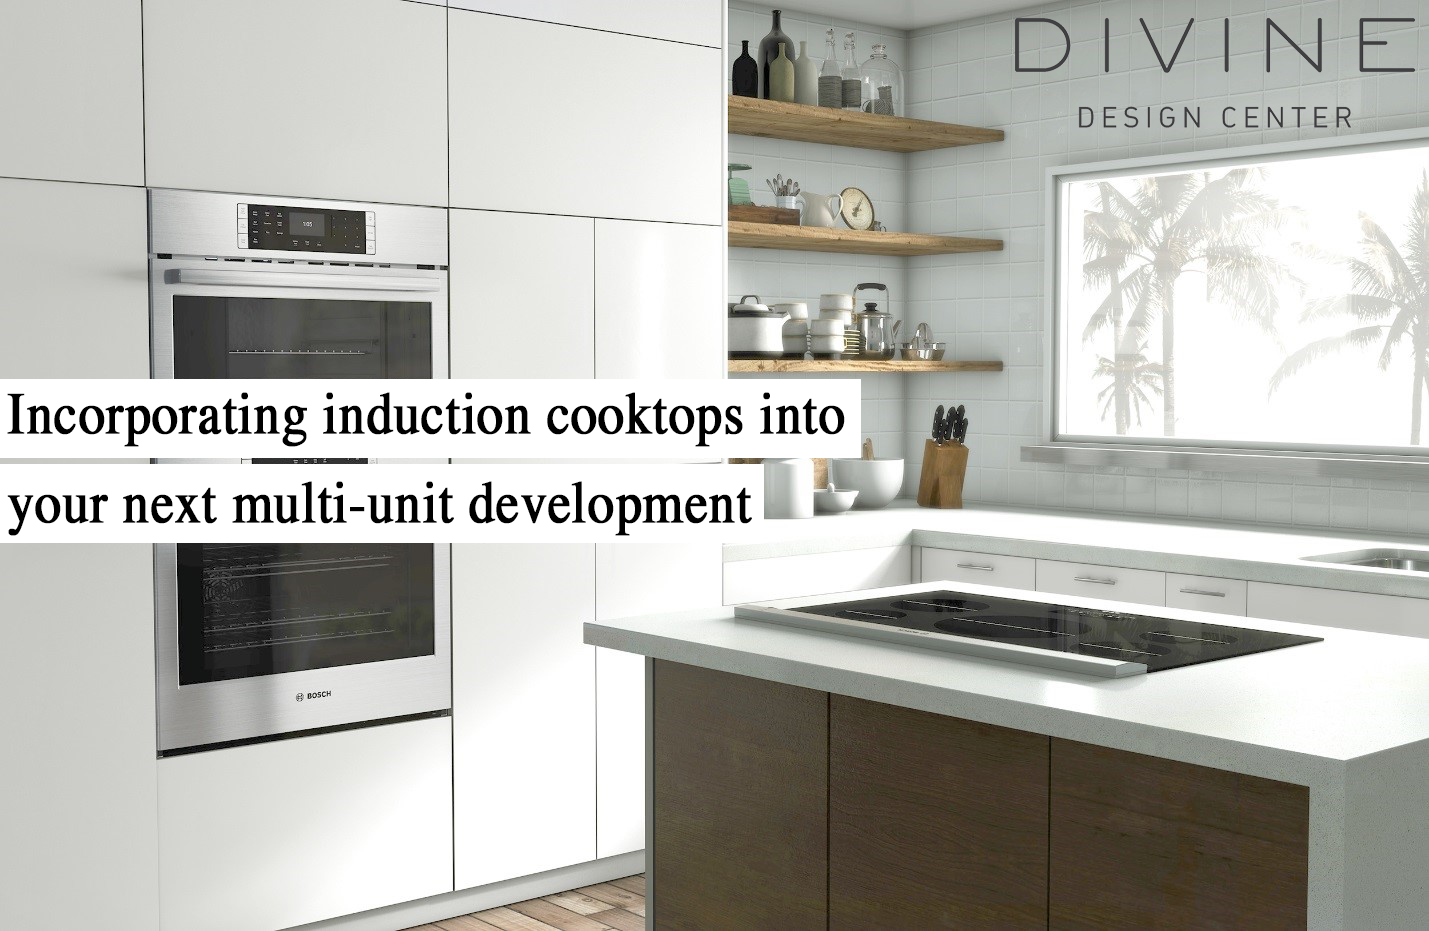 Incorporating induction cooktops into your next multi unit development